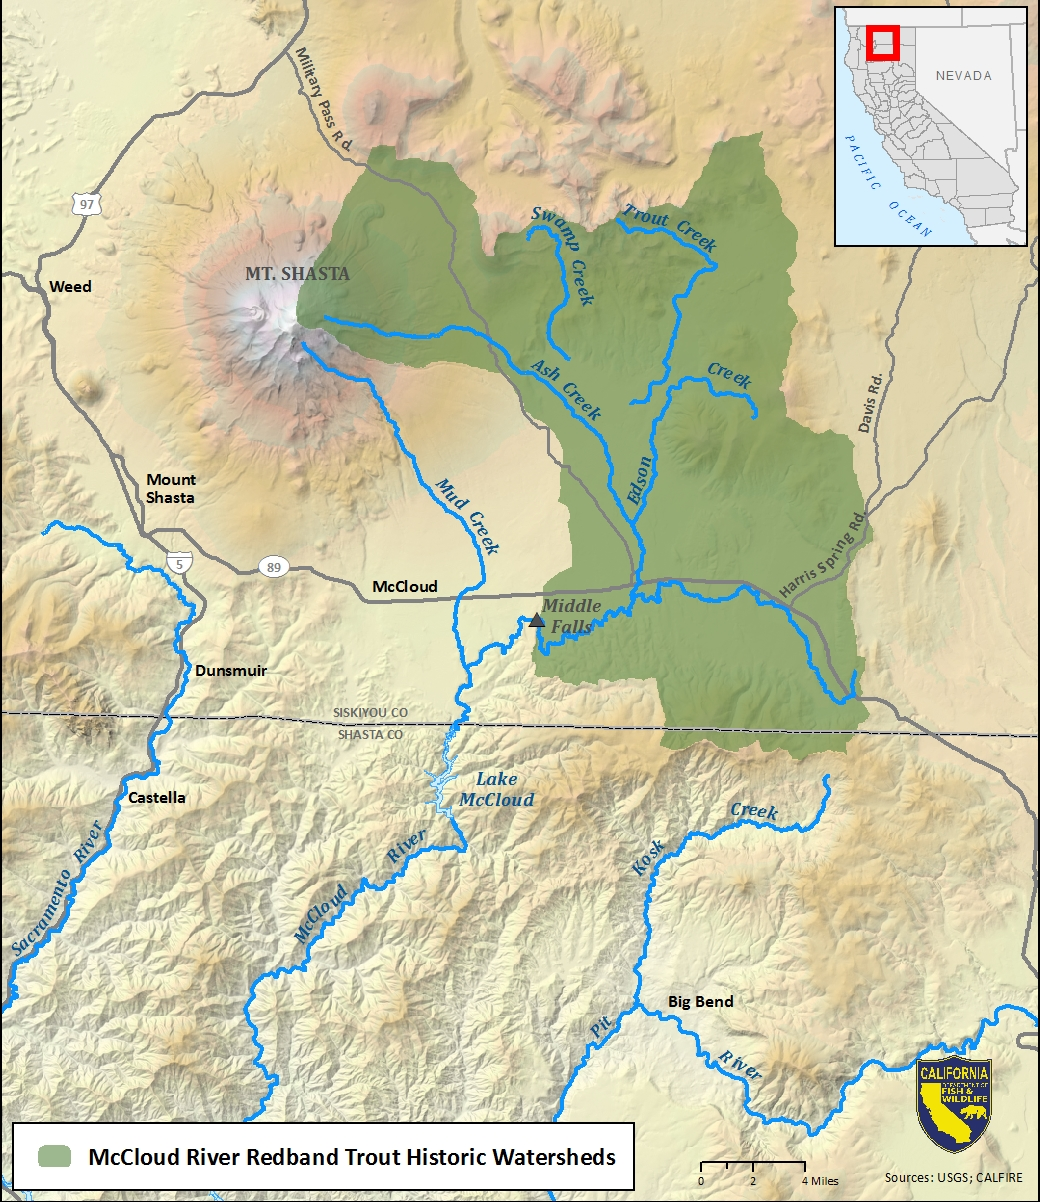 Map of McCloud River redband trout historic watersheds-link opens in new window